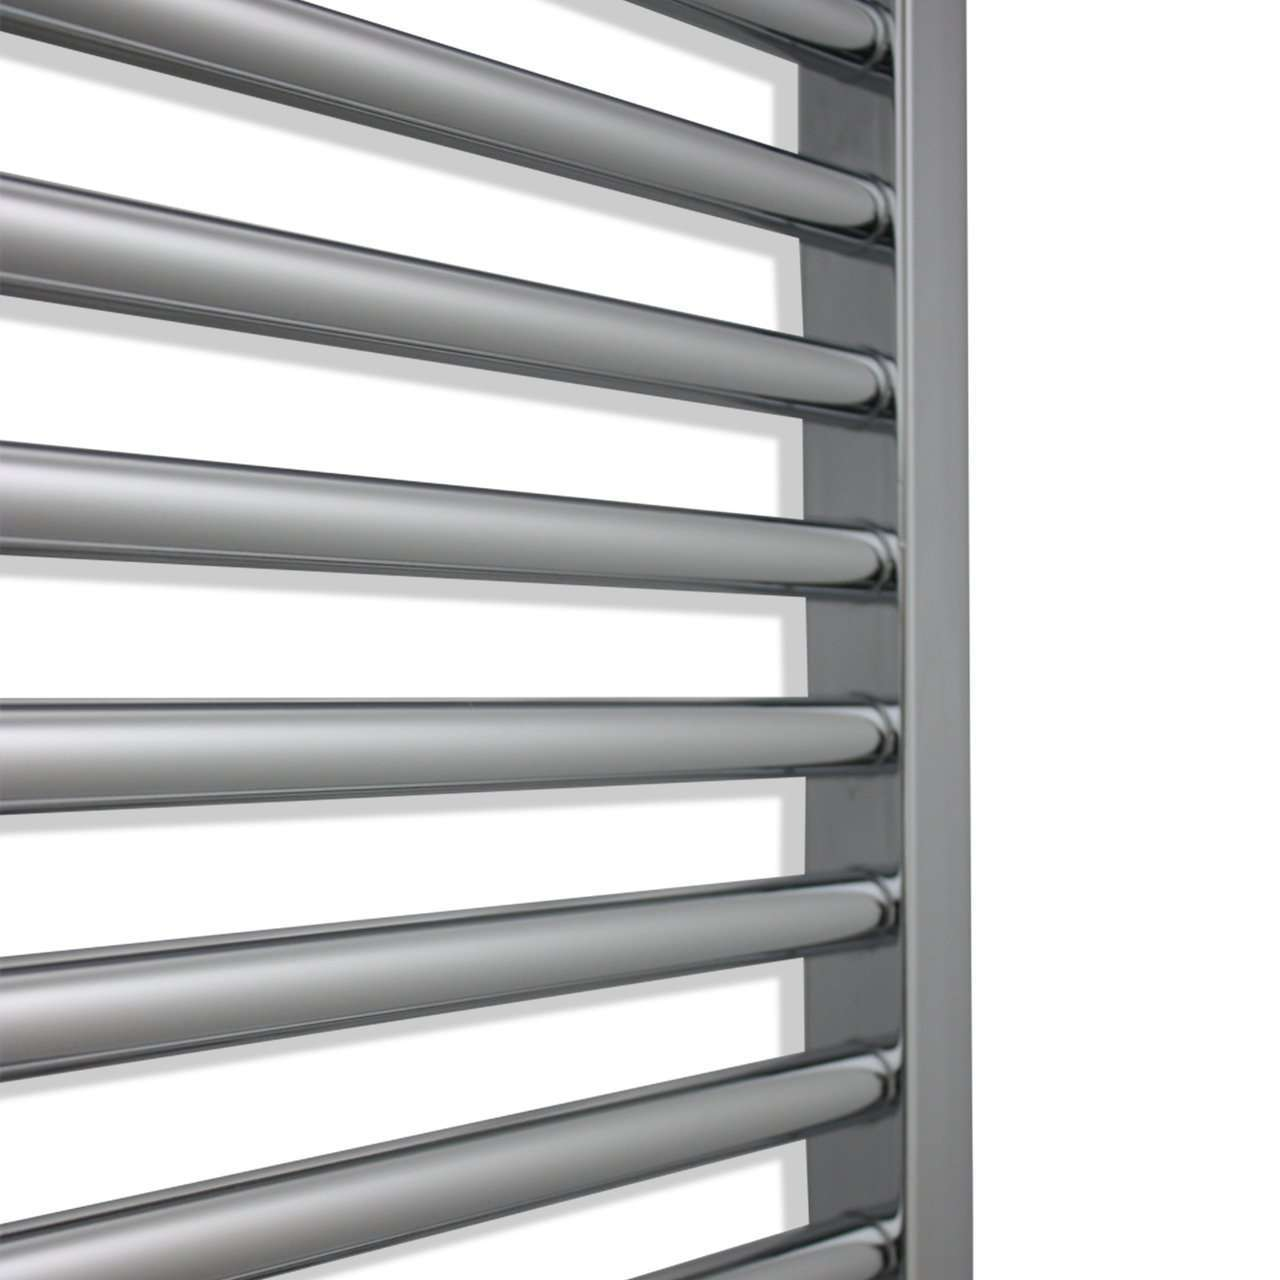 700mm Wide 1000mm High Curved Chrome Heated Towel Rail Radiator HTR